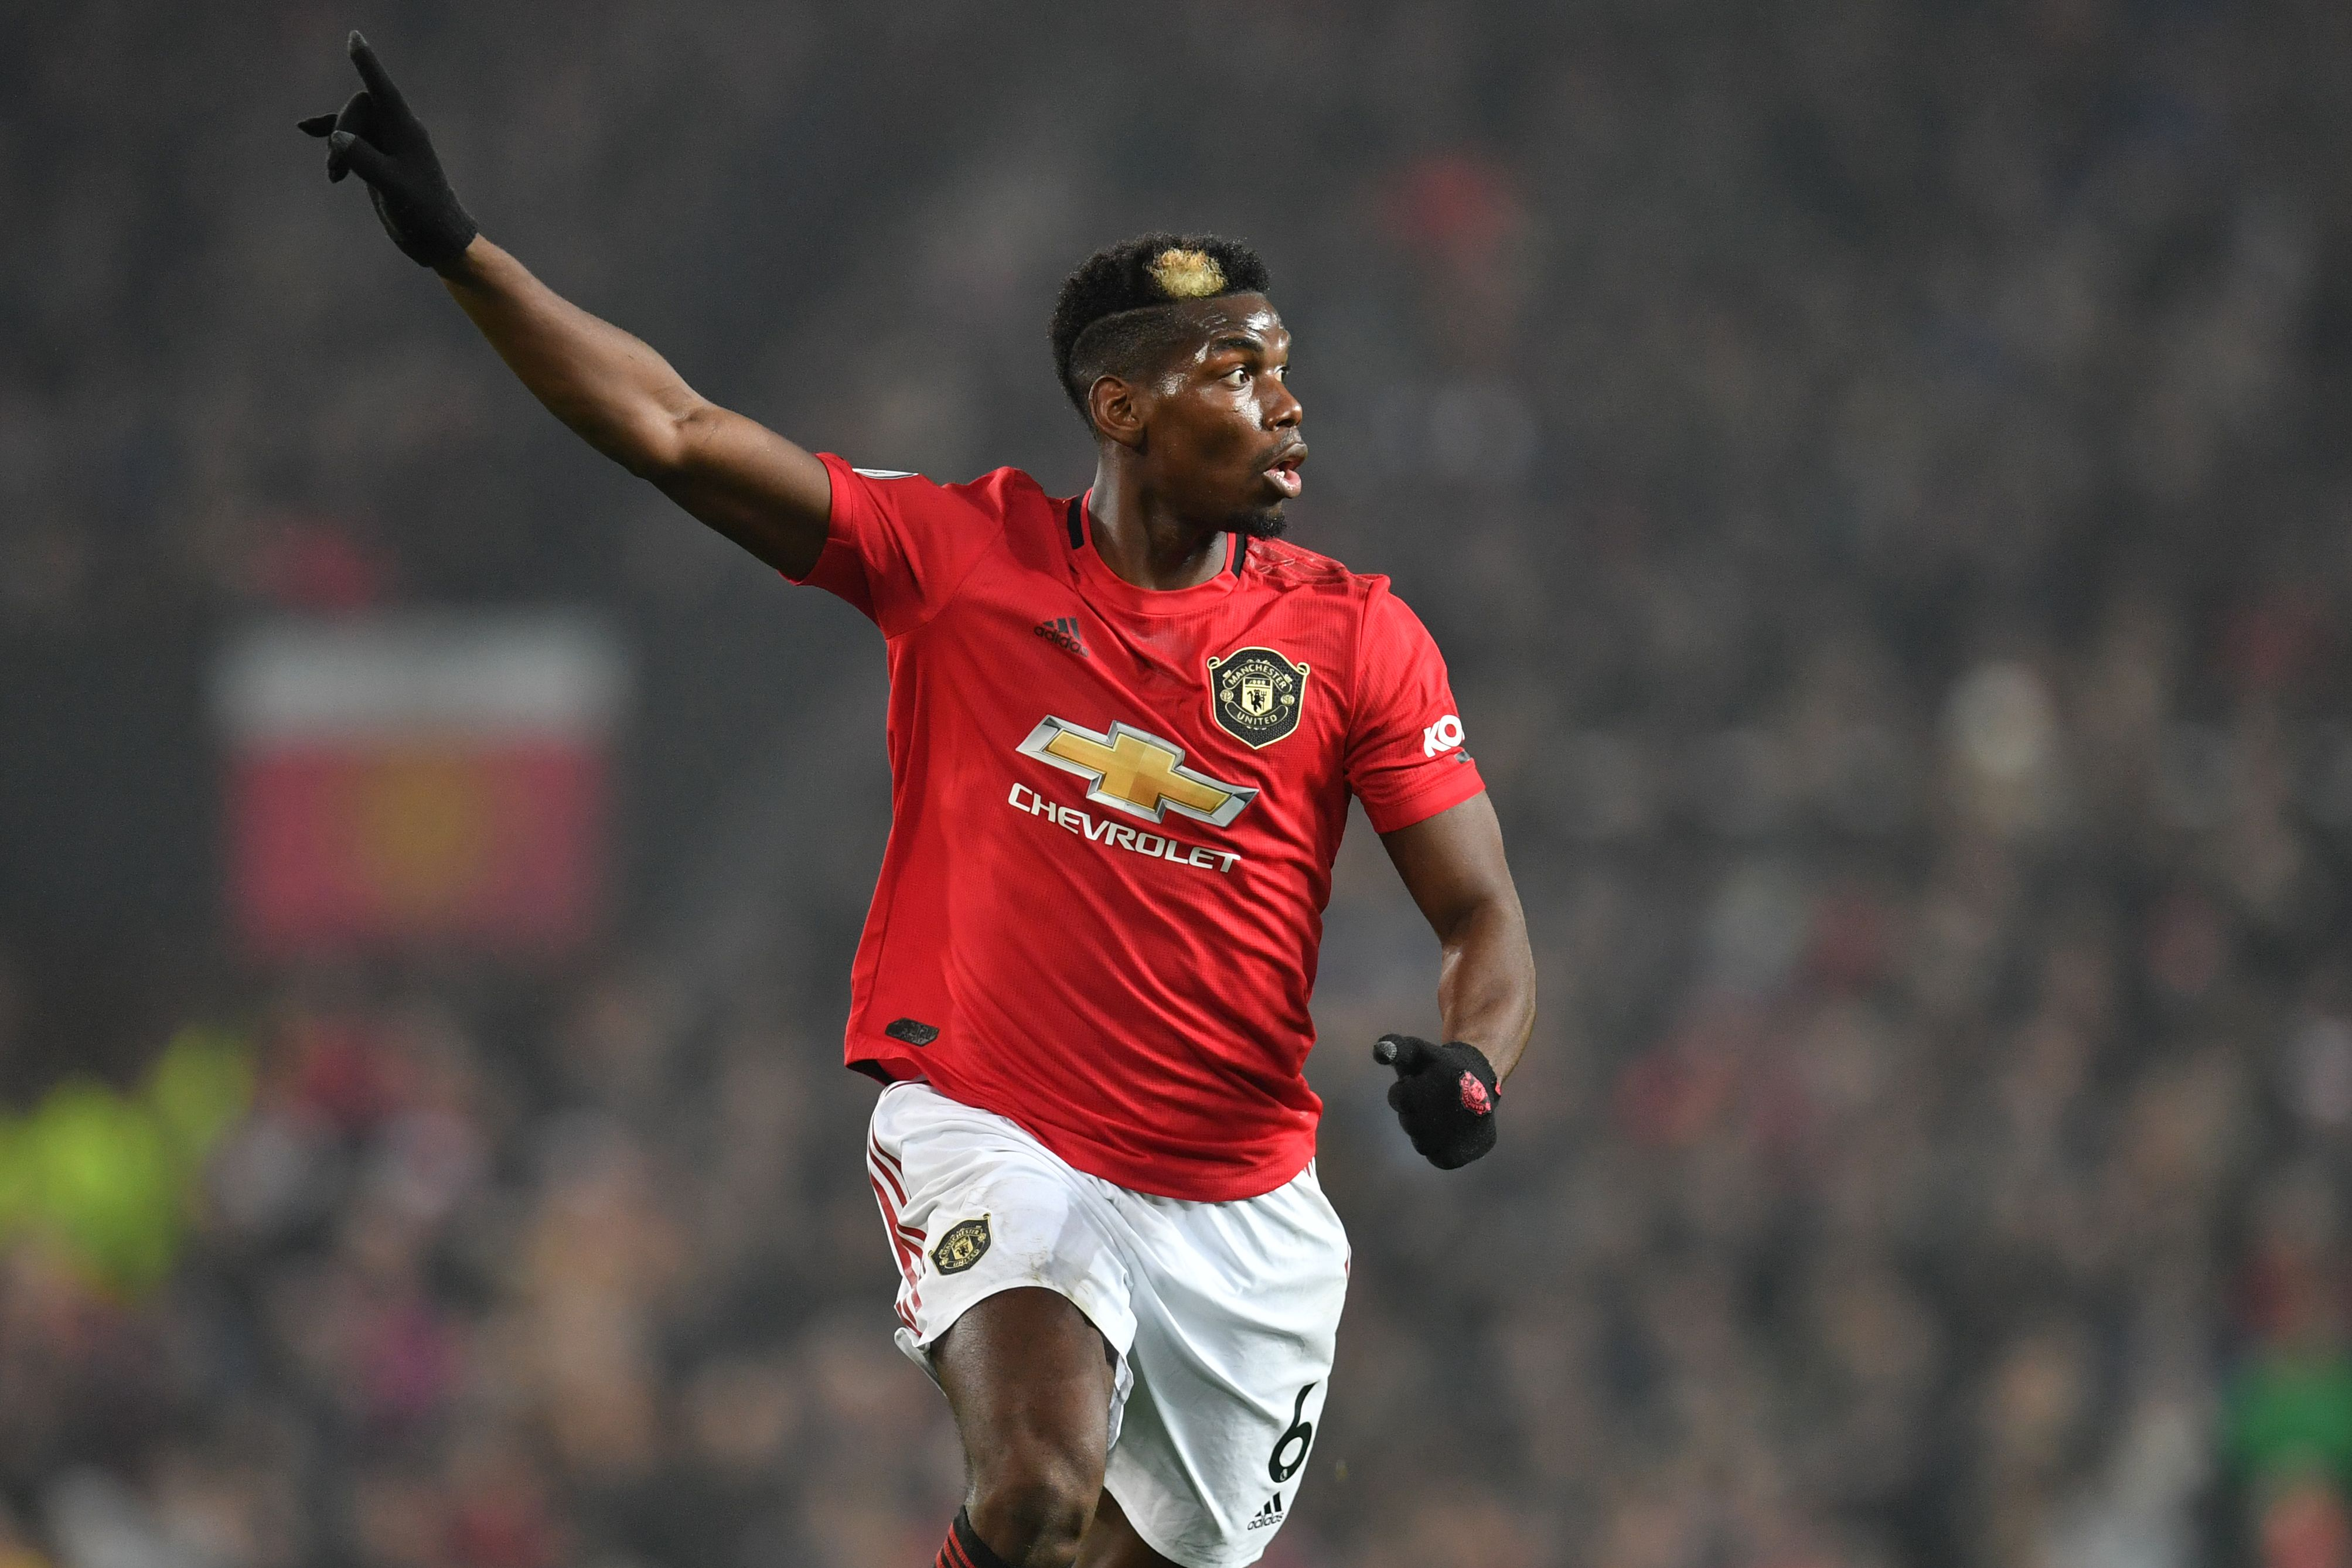 Replacements being lined up for Paul Pogba (Photo by Paul Ellis/AFP via Getty Images)